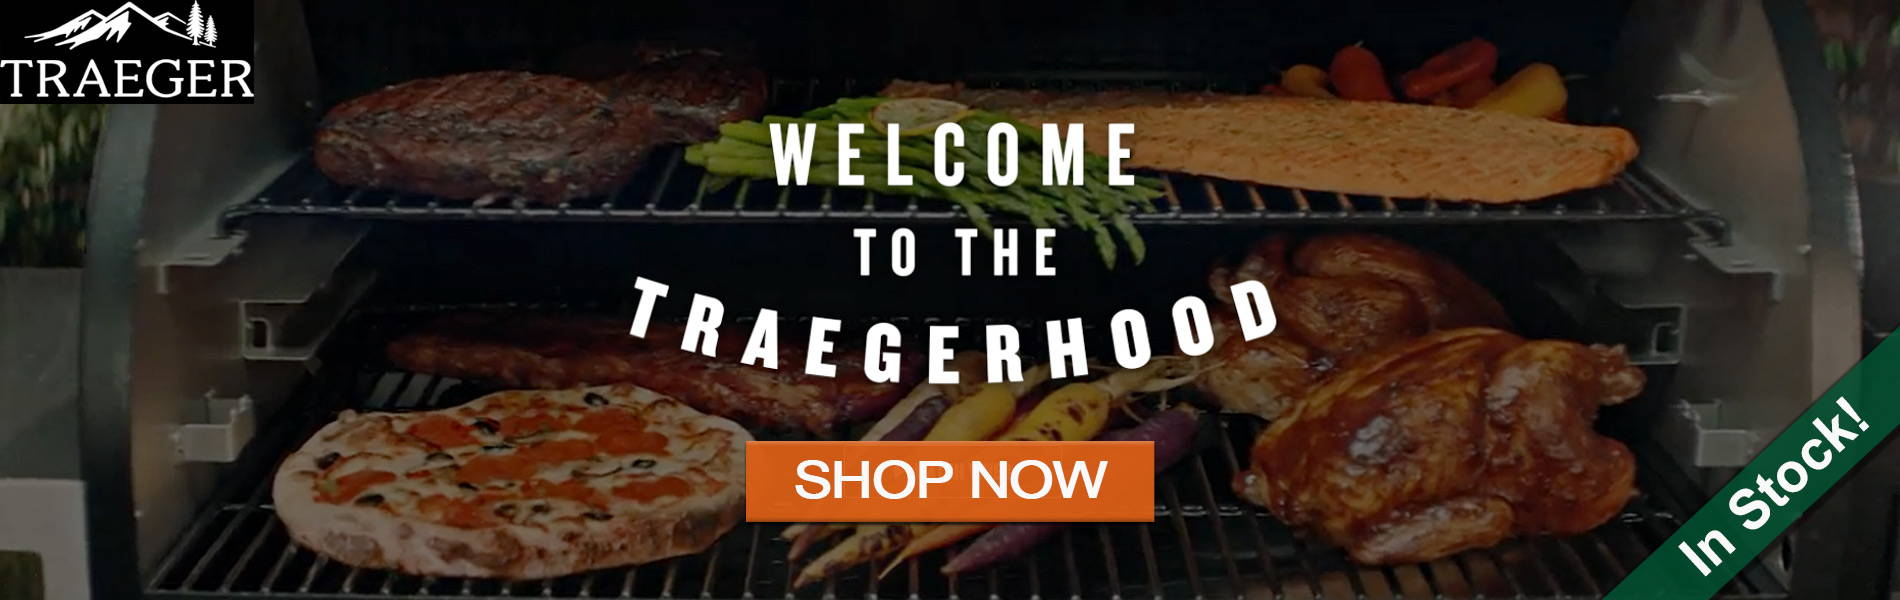 Shop Traeger Grills & Cooking Items